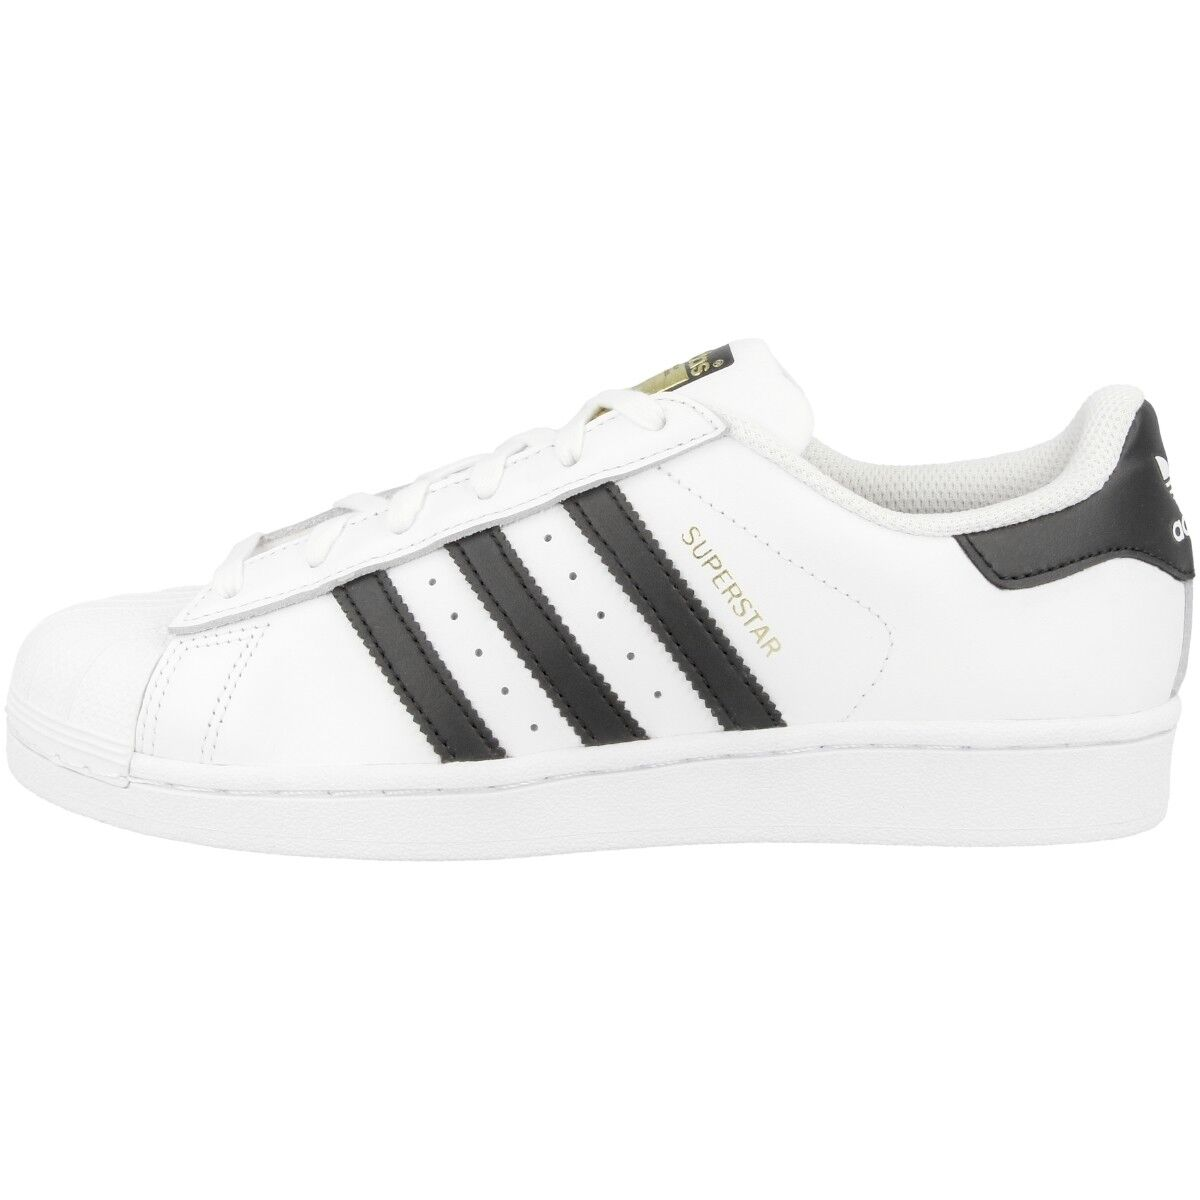 Adidas Superstar J zapatos blanco negro c77154 retro cortos Dragon Foundation CF